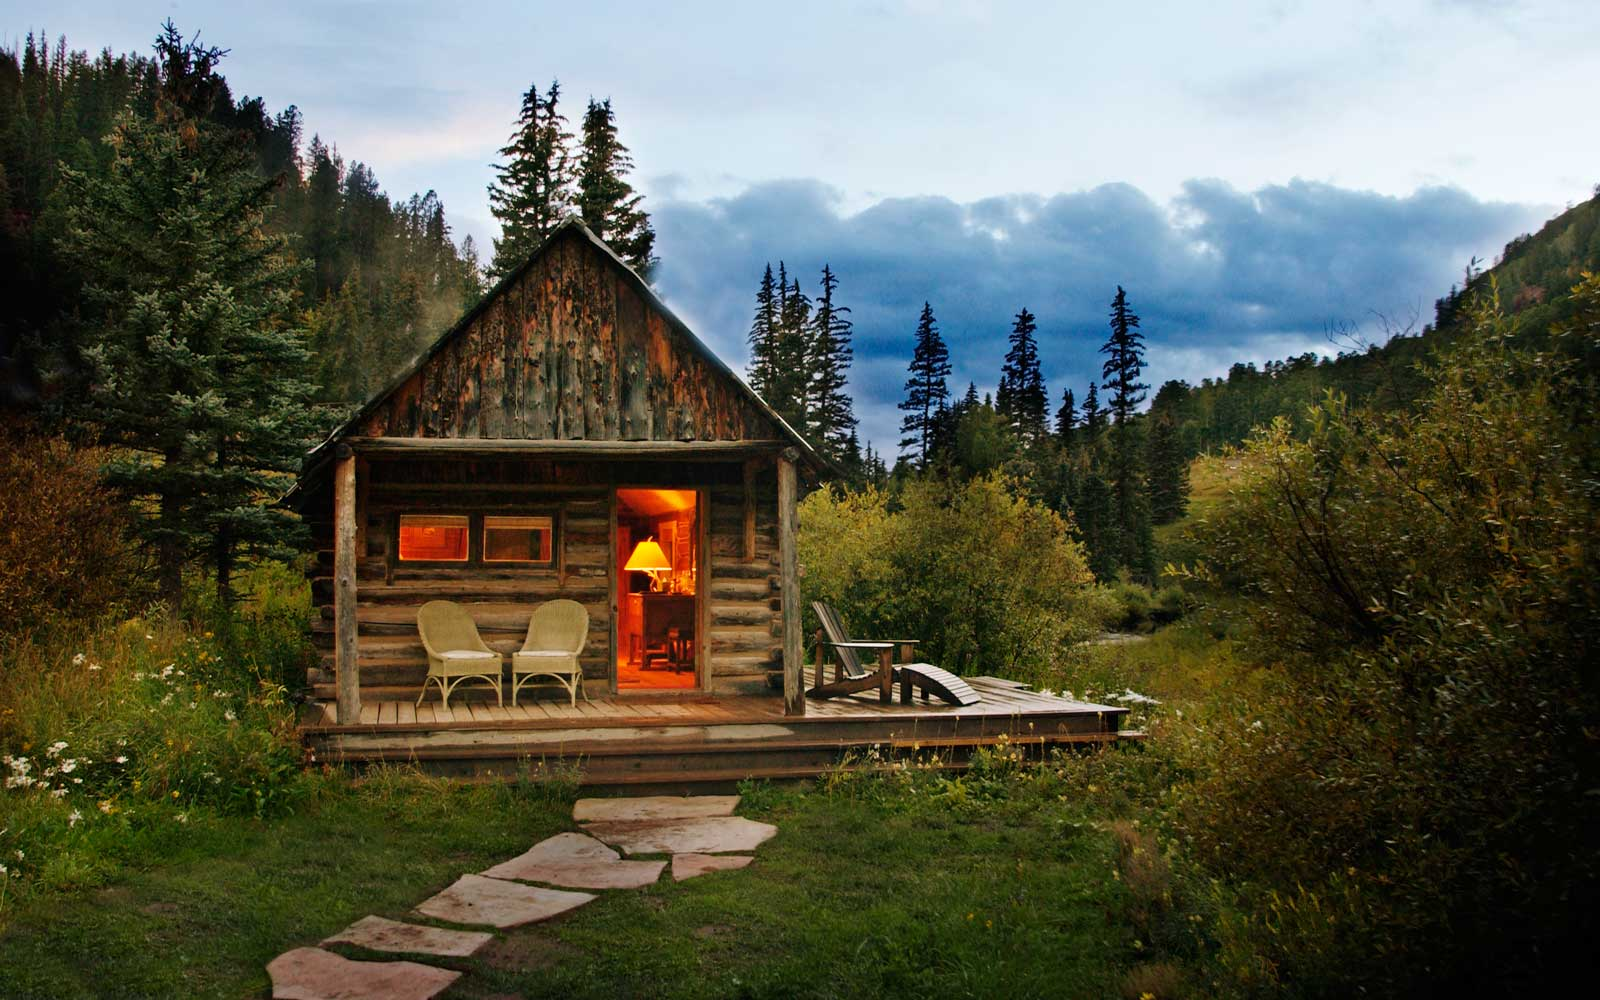 The Dolores Cabin, at Dunton Hot Springs, Colorado